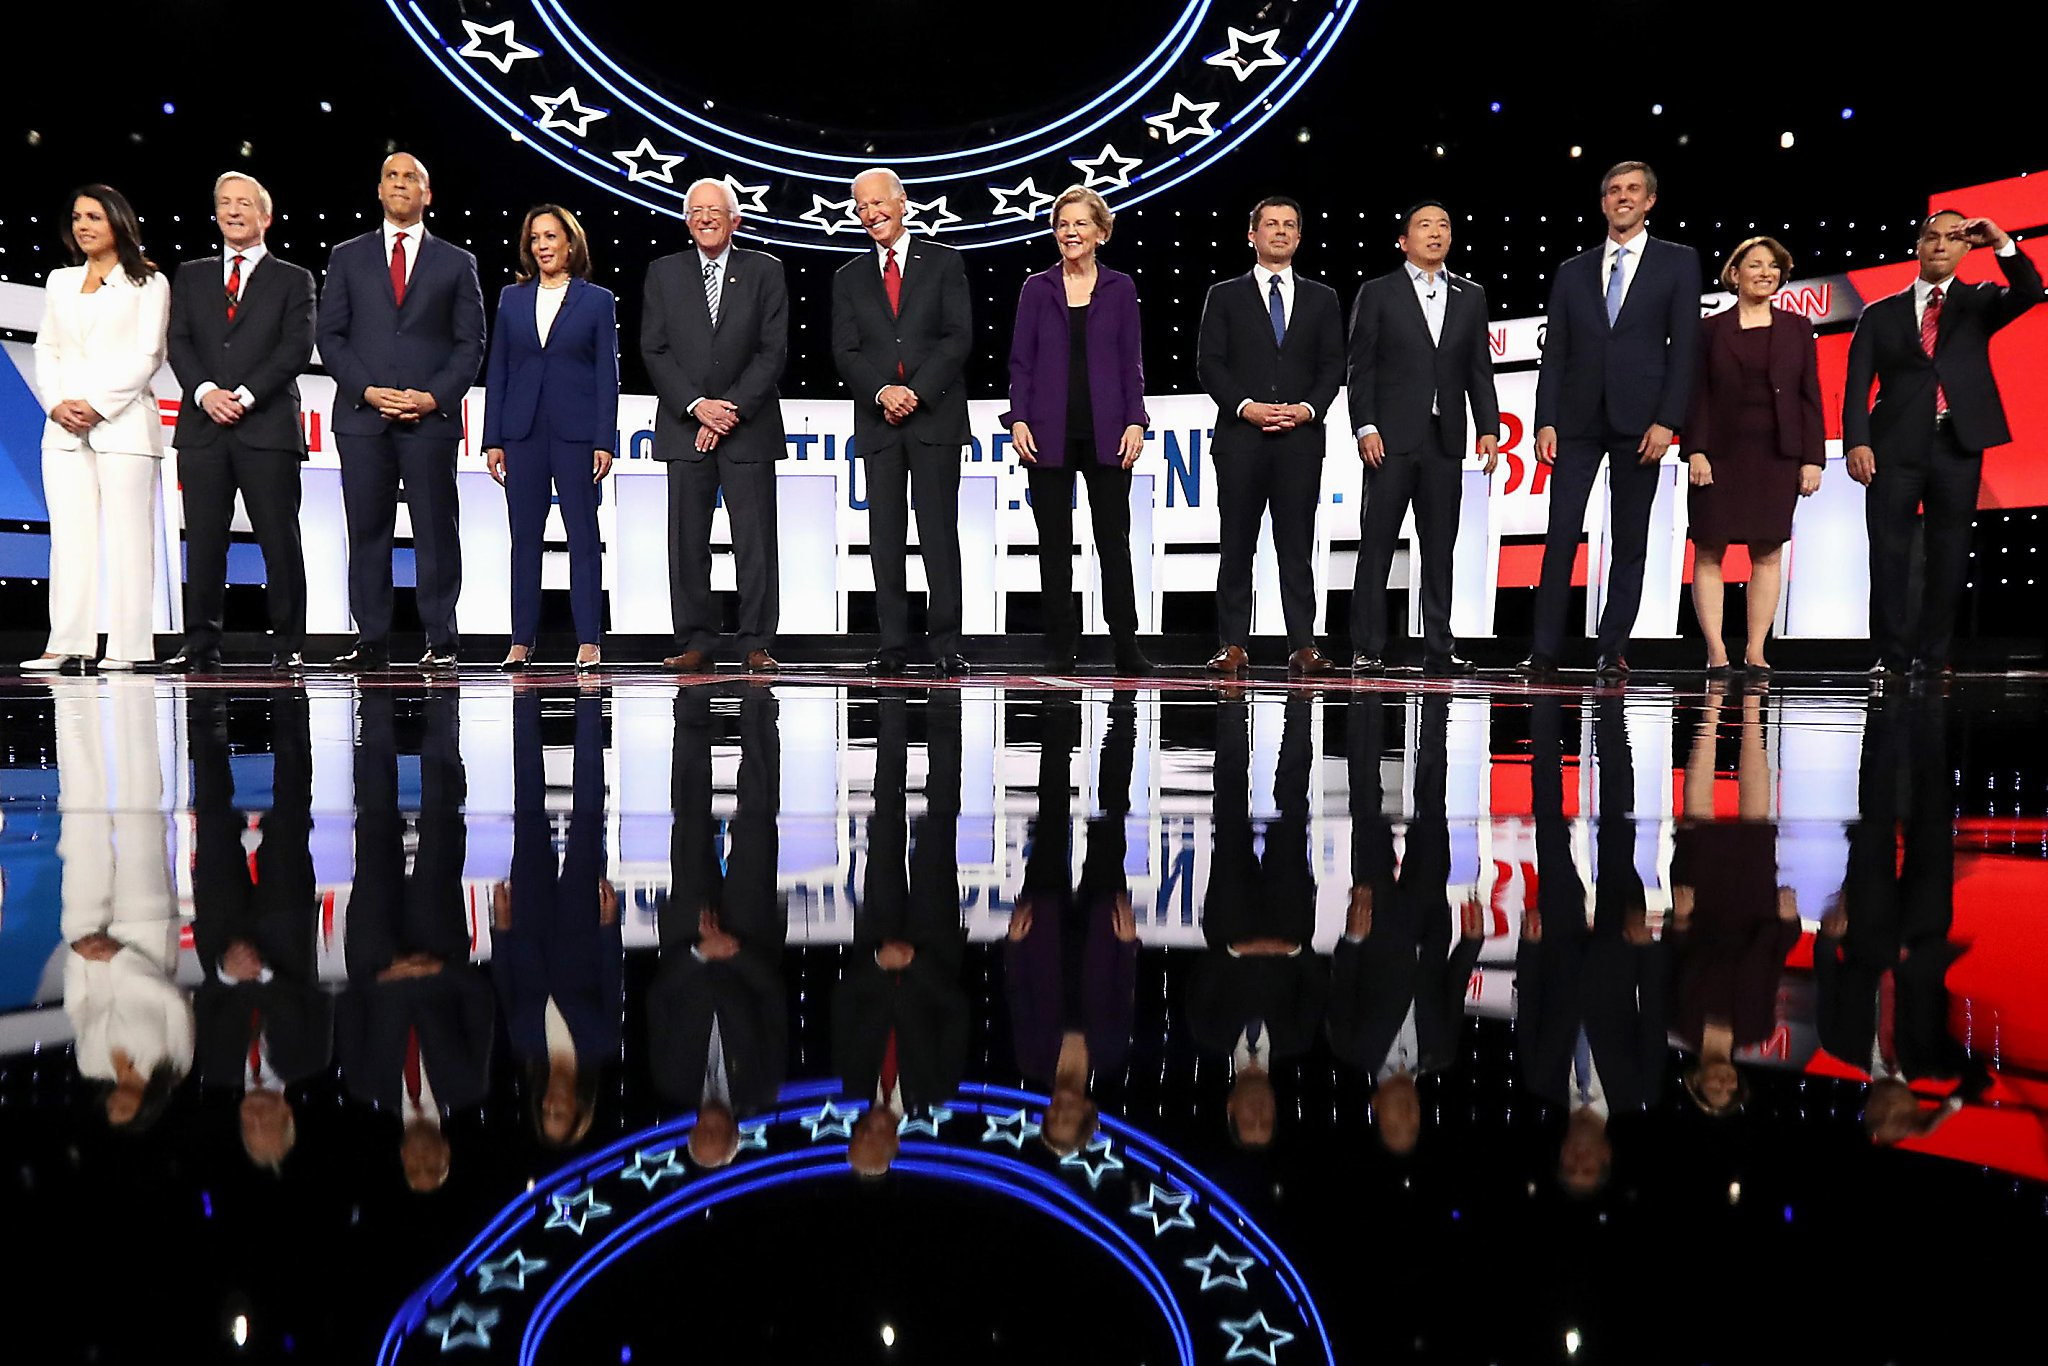 Democrats' 'most diverse field' ended up with two white men. Can that be changed next time?